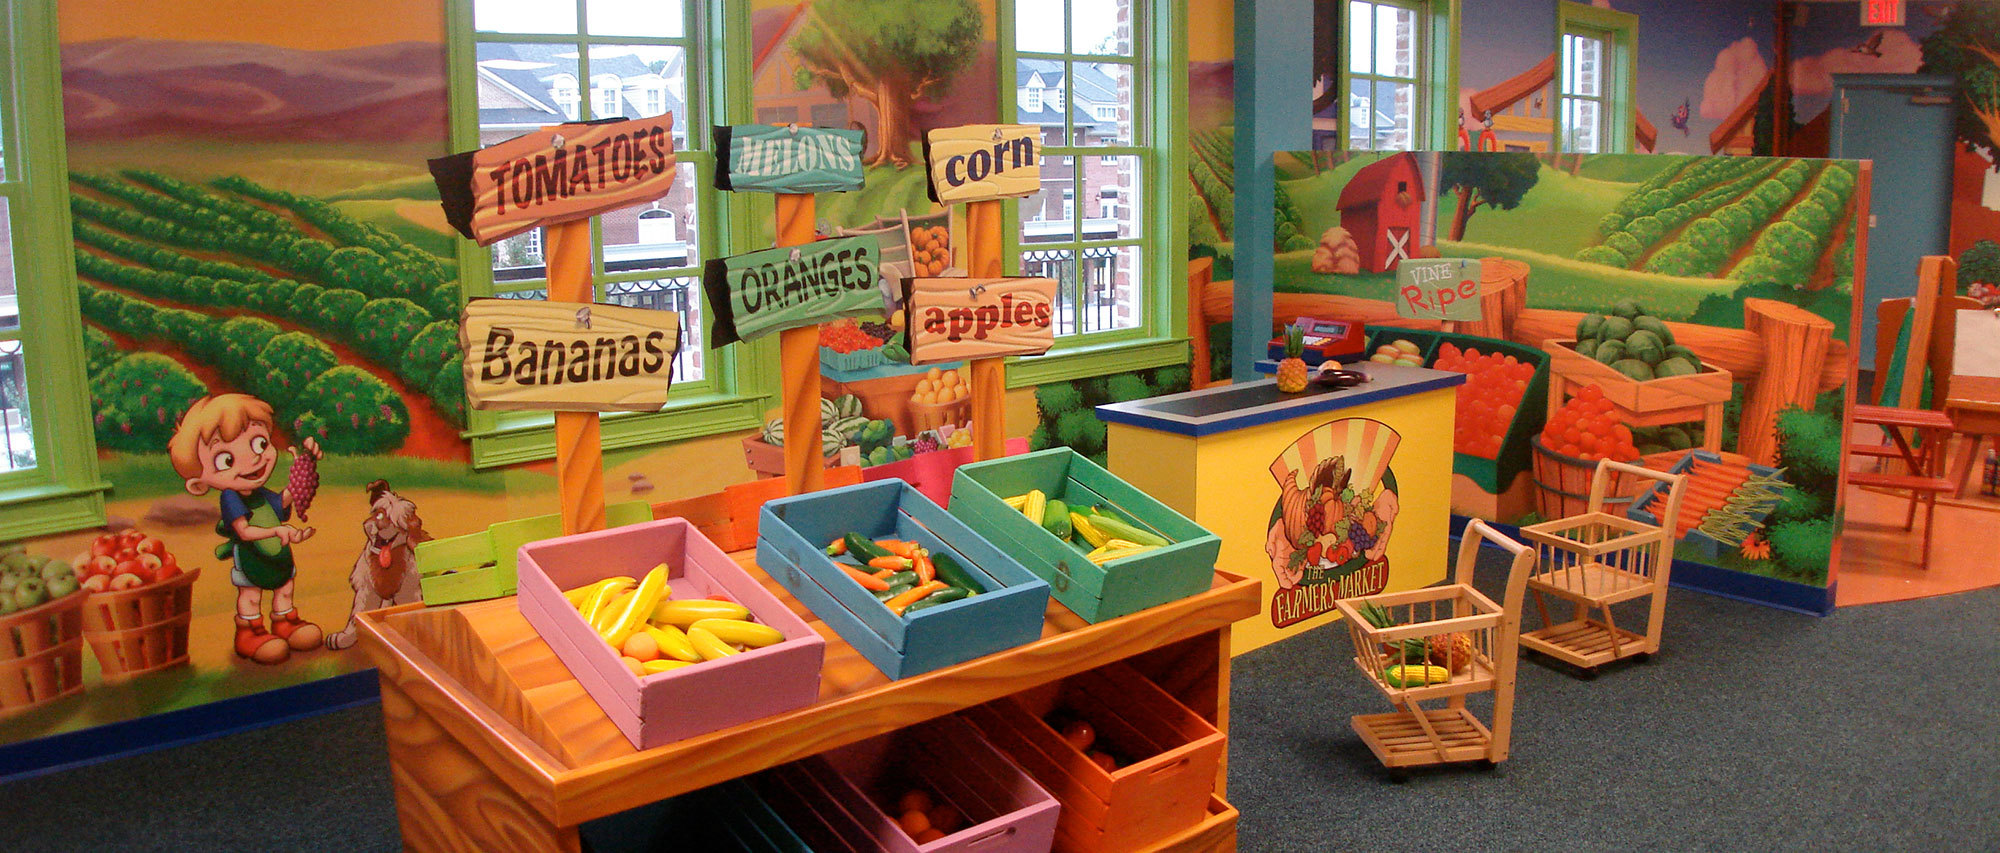 Neighborhood Farmers Market Themed Play Space at Imaginations at Play